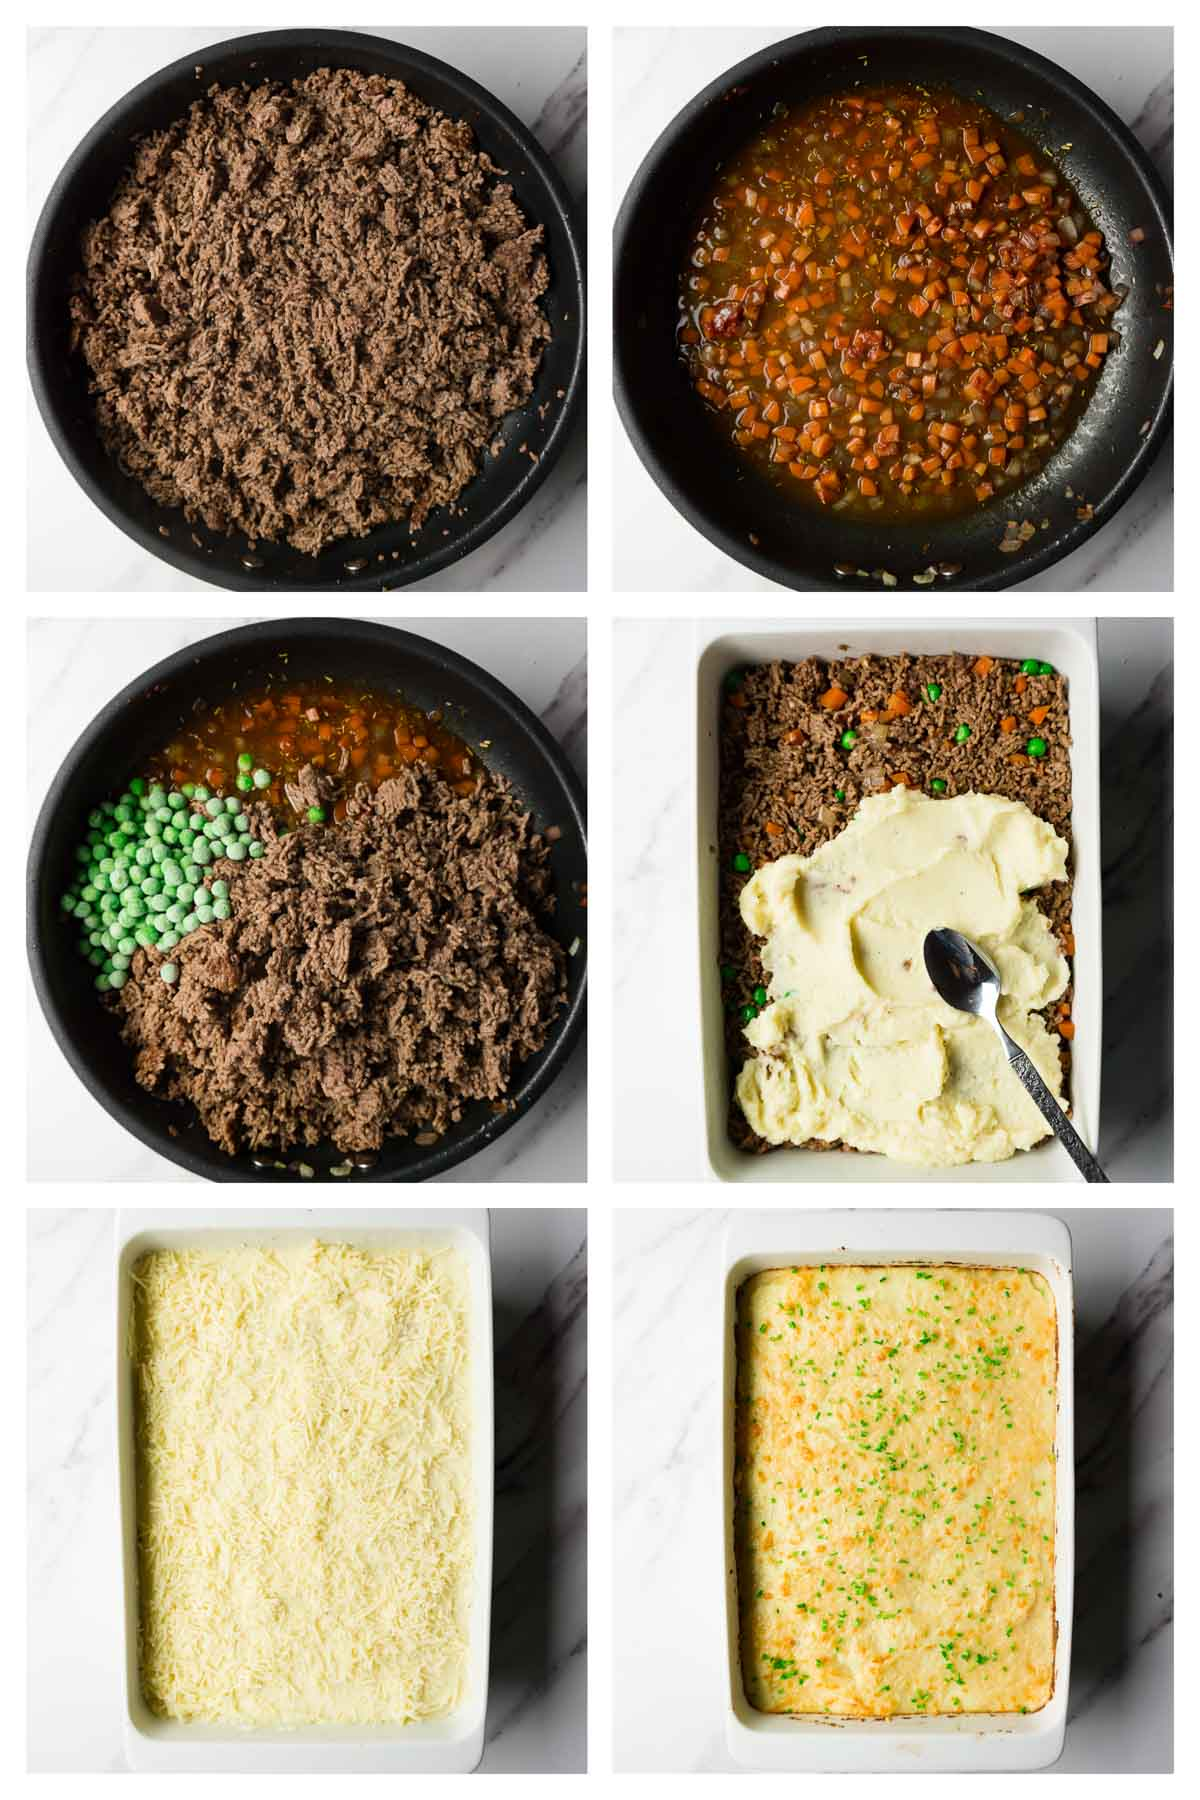 6 steps collage image showing how to assemble keto shepherd's pie.